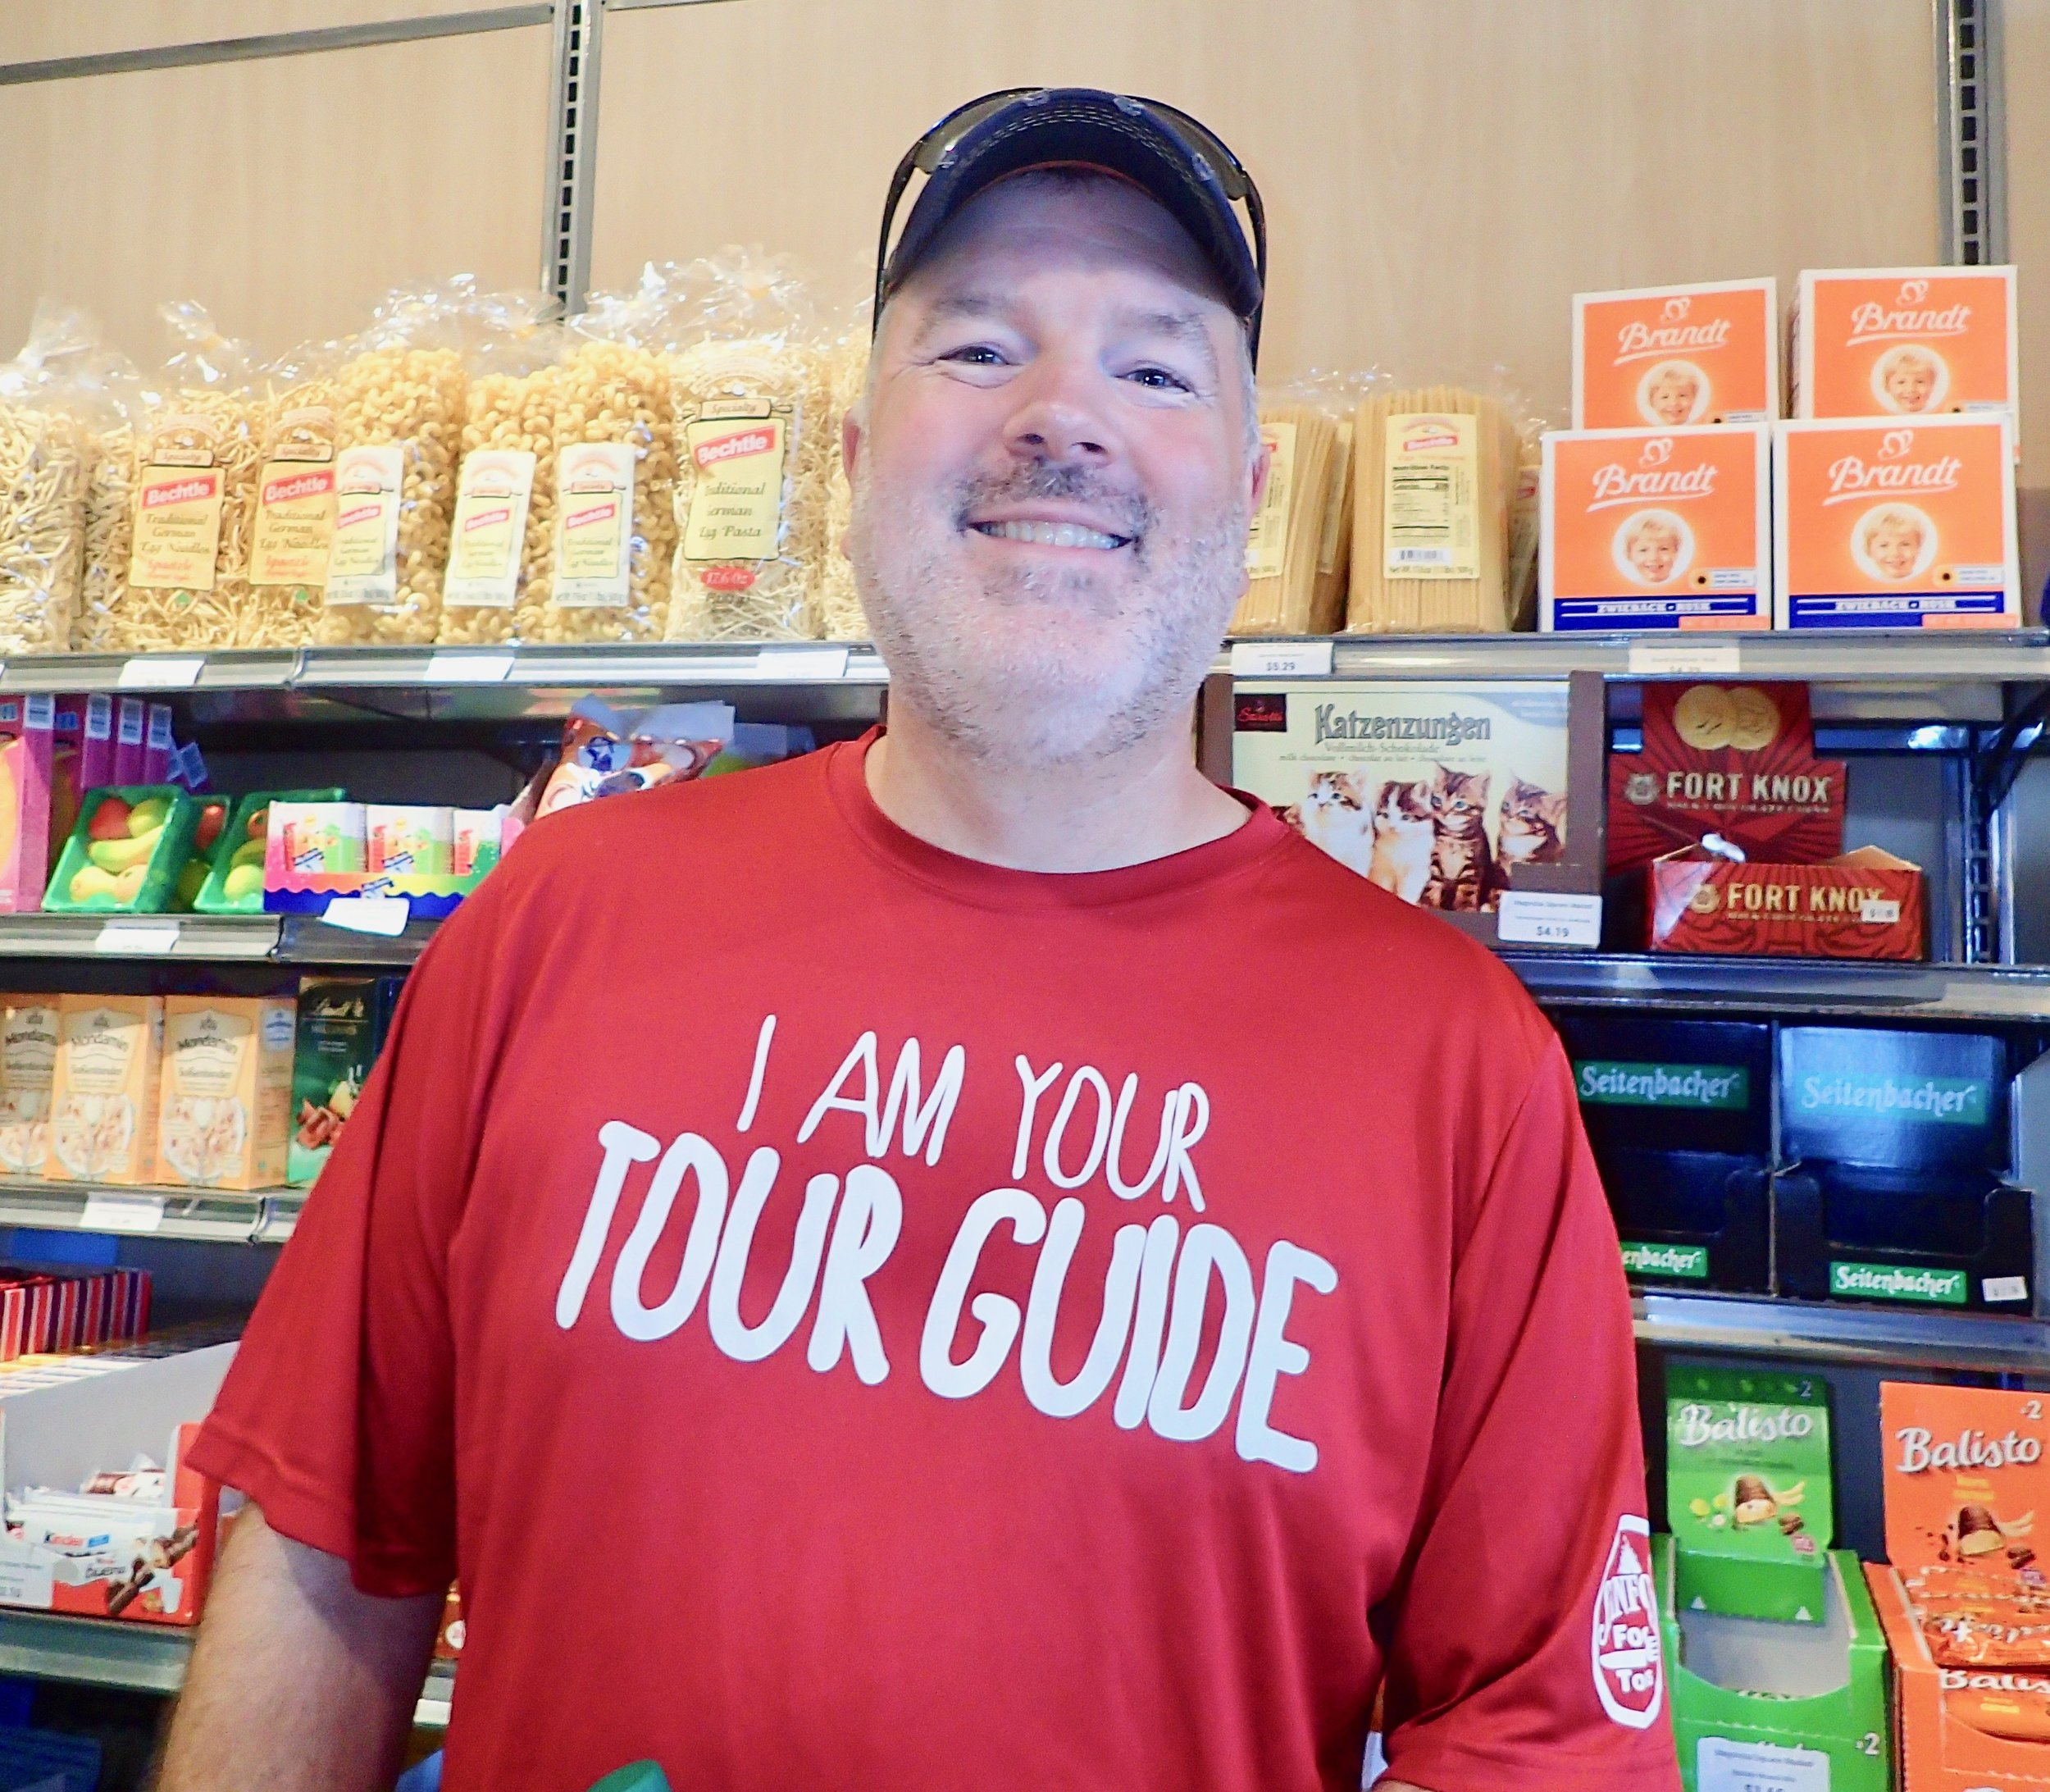 Sanford Food Tours co-owner and tour guide Rob Paul, inside Magnolia Square Market